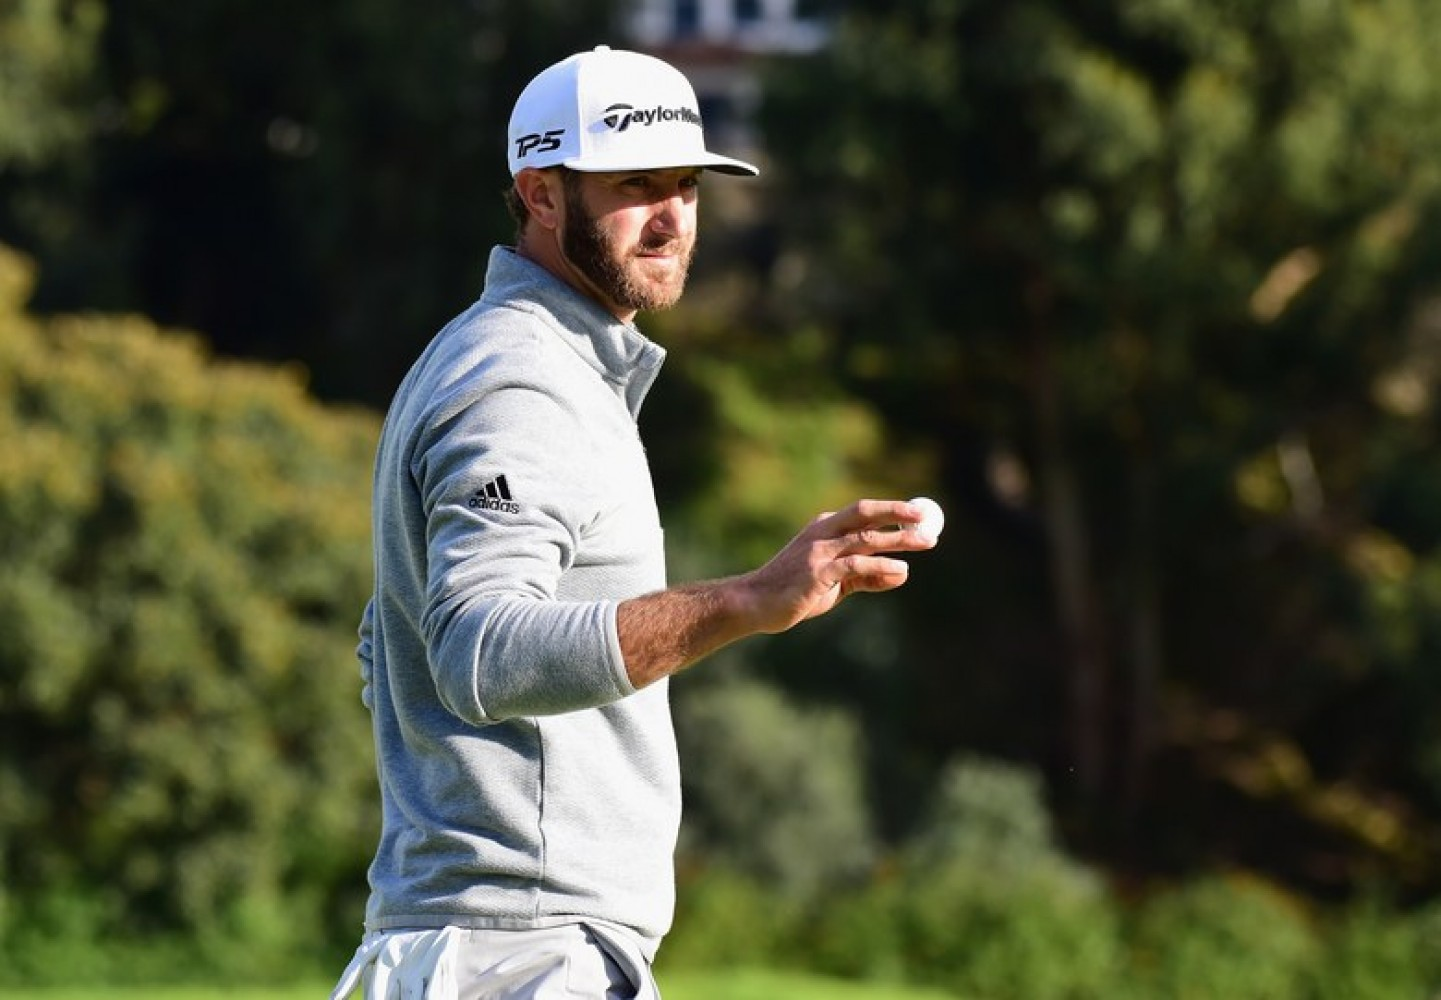 Dustin Johnson cruises to win at Riviera to take over as world No. 1